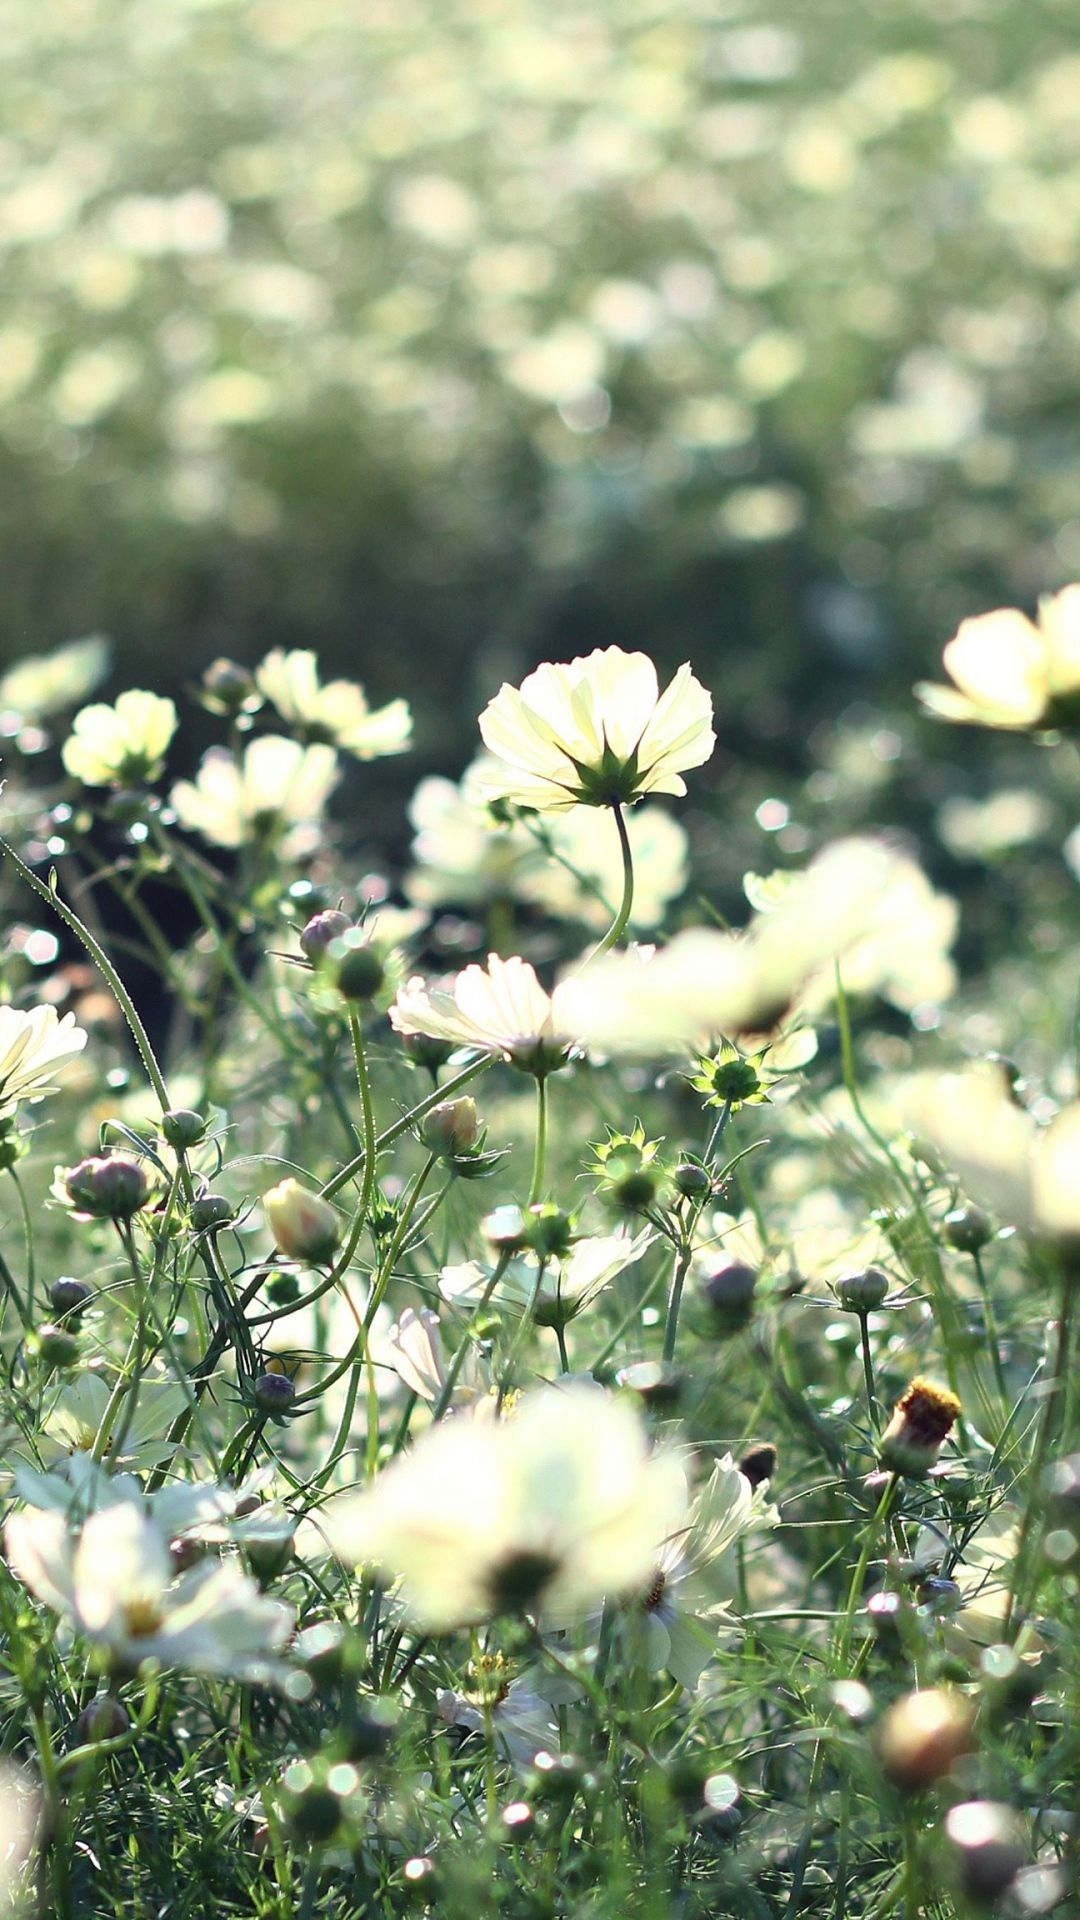 Cosmos Flowers Find More Nature Themed Wallpapers For Your Iphone Android Prettywallpap Flower Iphone Wallpaper Nature Iphone Wallpaper Nature Wallpaper